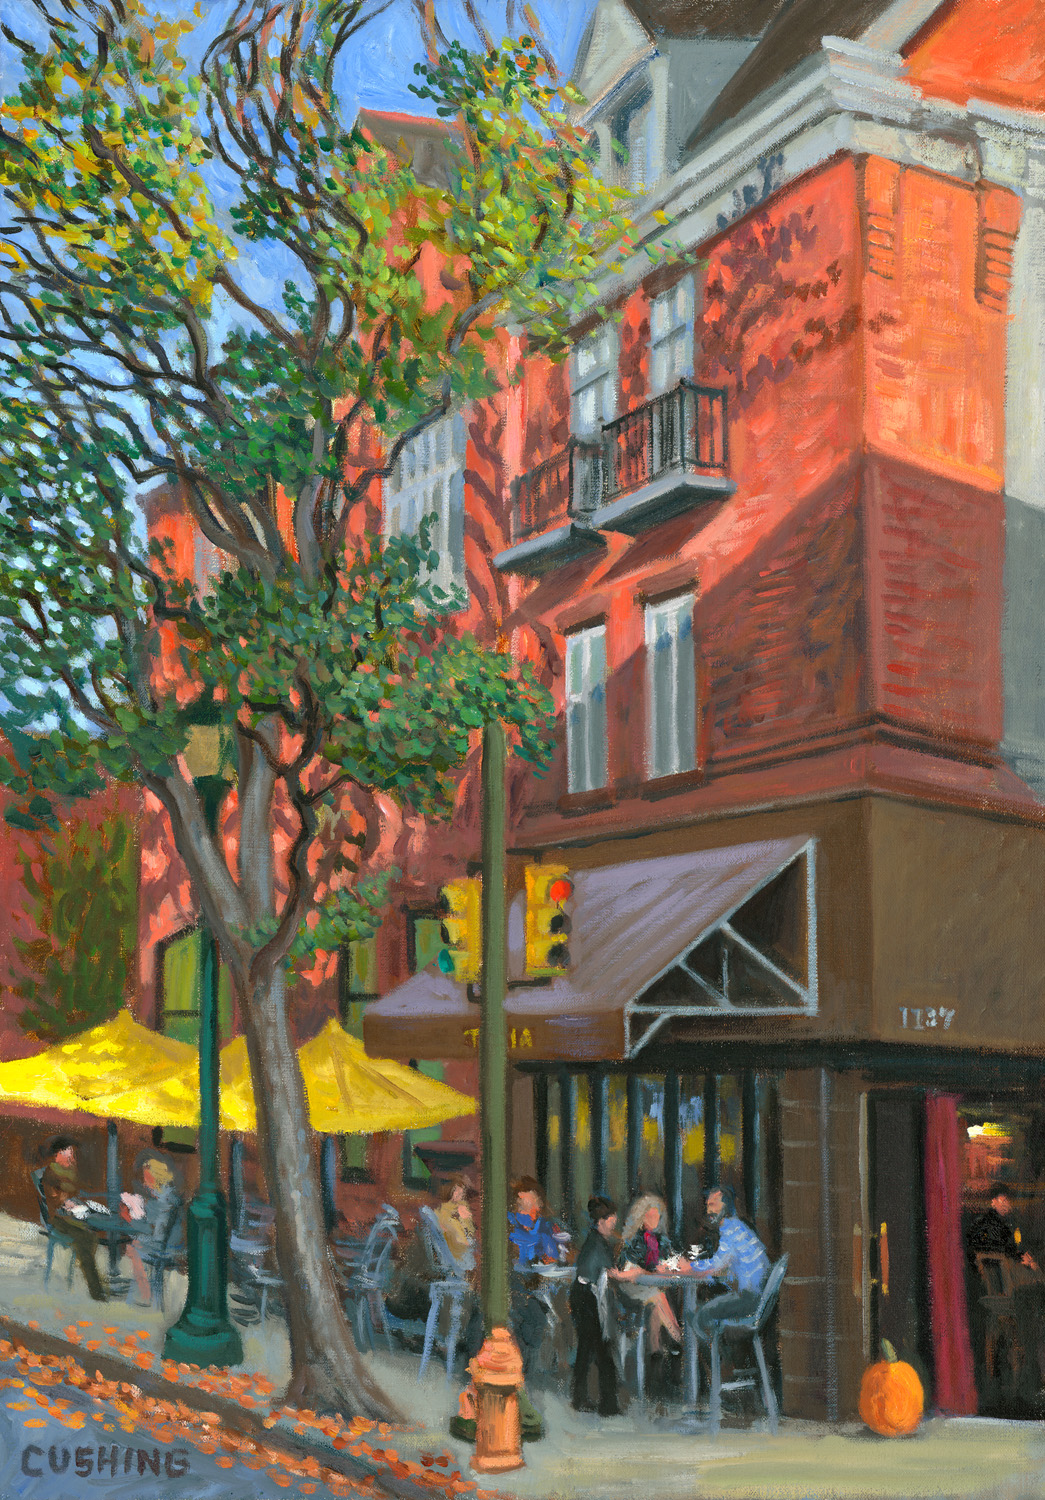 """""""TRIA, 12 and Spruce Streets"""" 27 x 19""""  (sold)"""